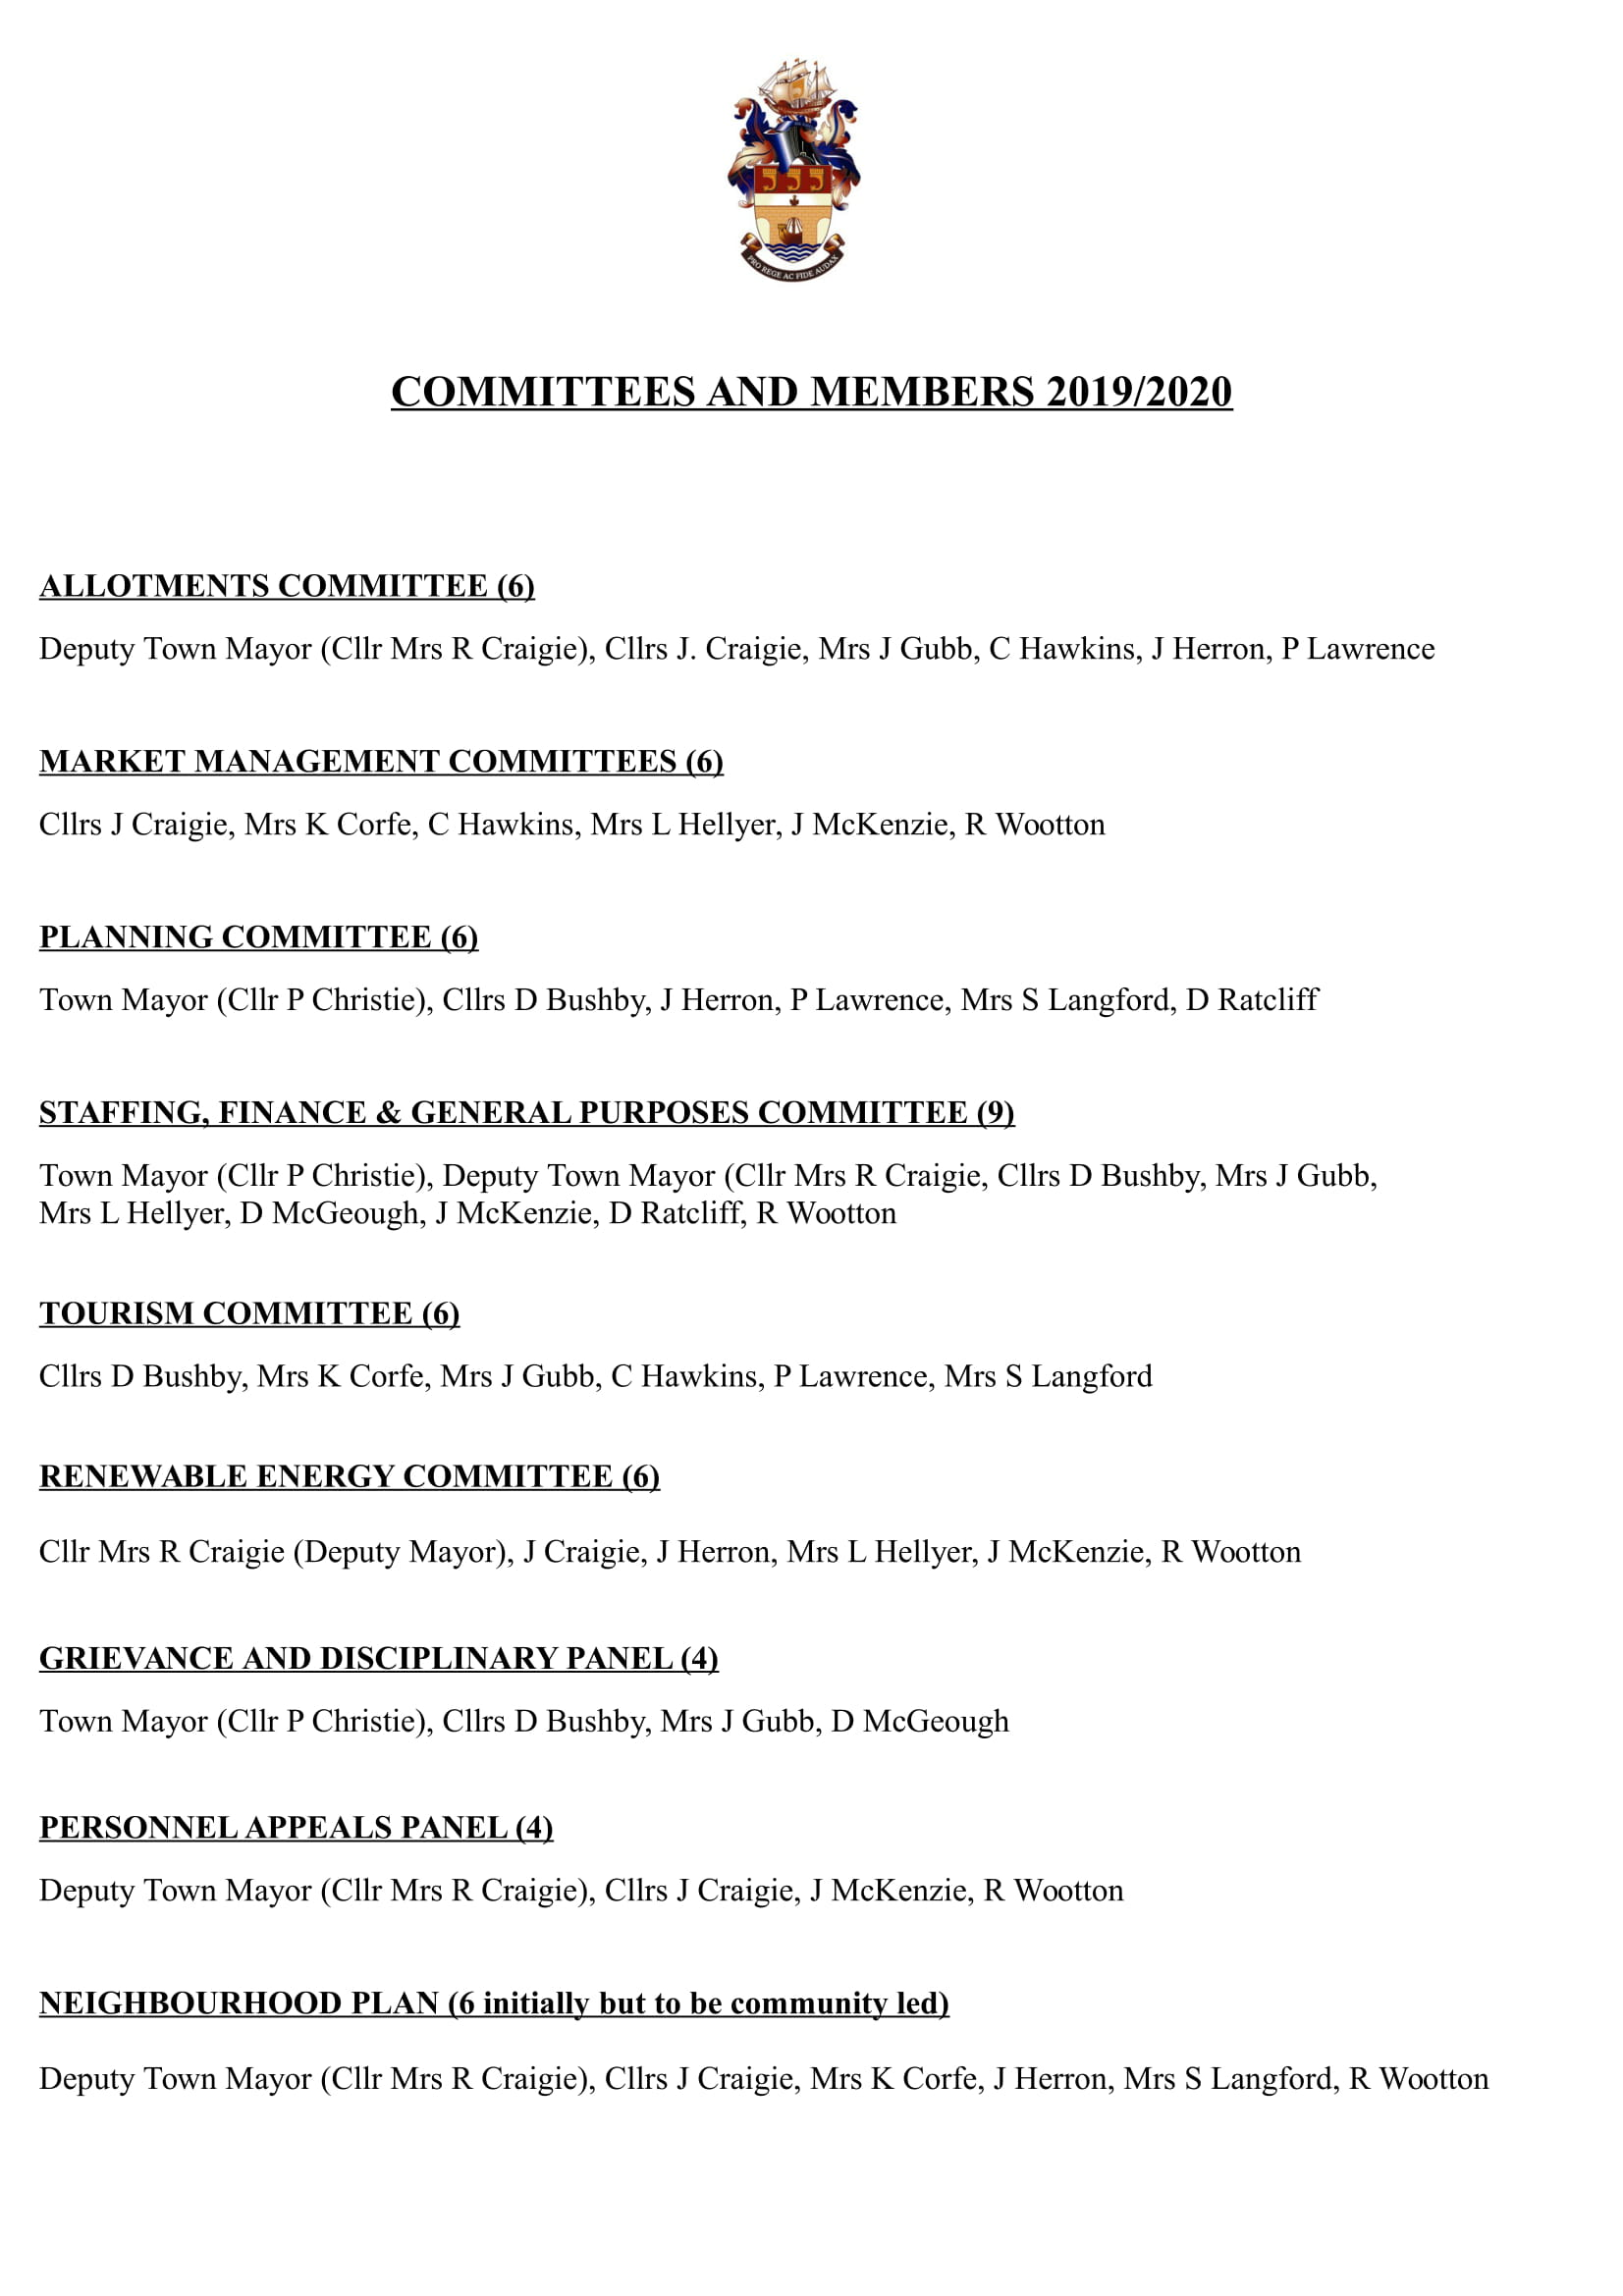 Council Committees and Membership 2019-2020